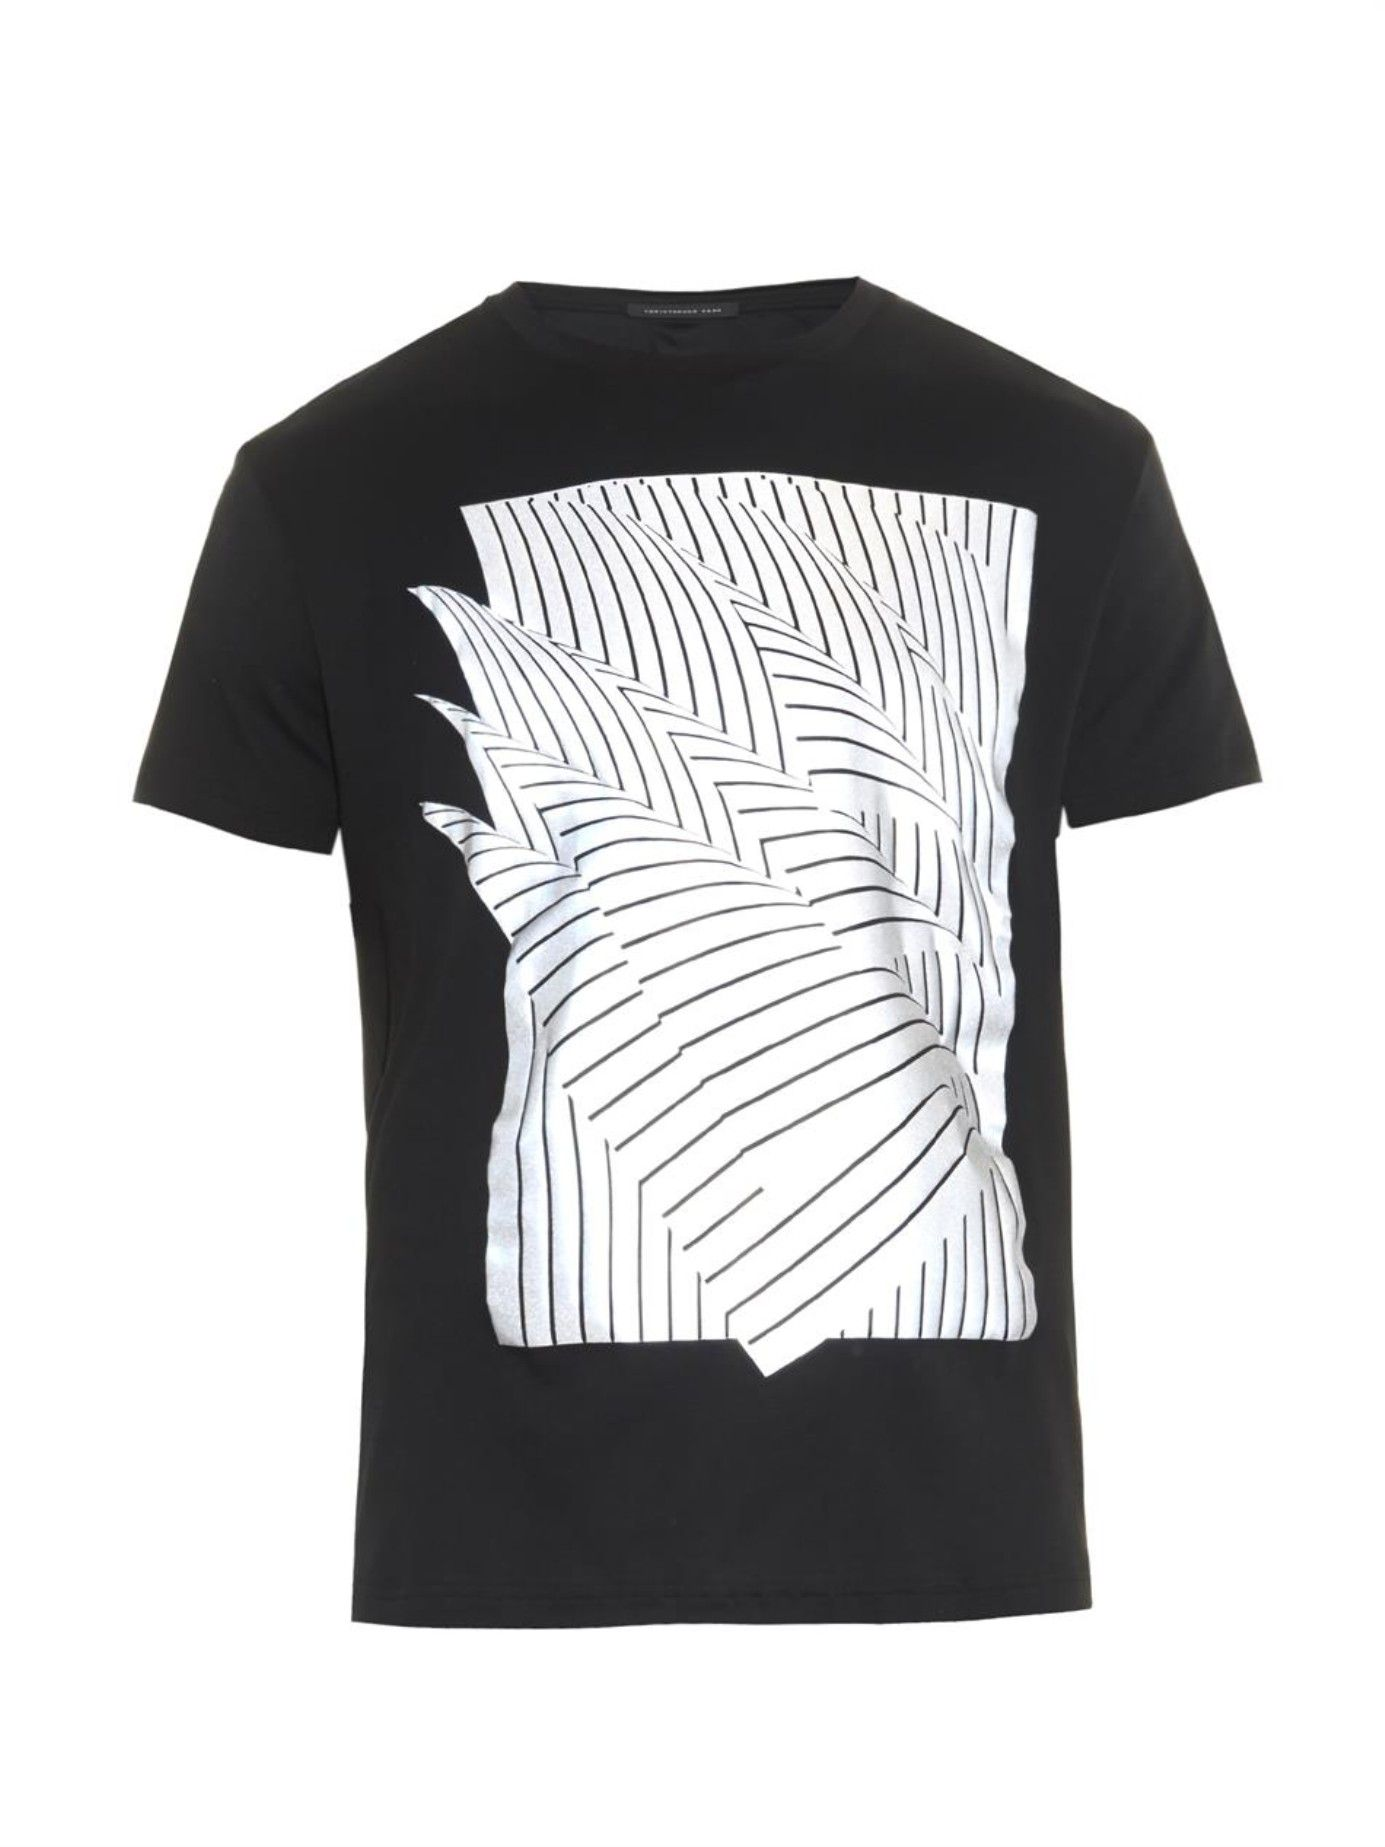 SHIRTS - Shirts Christopher Kane Free Shipping Official Site j1Tebc